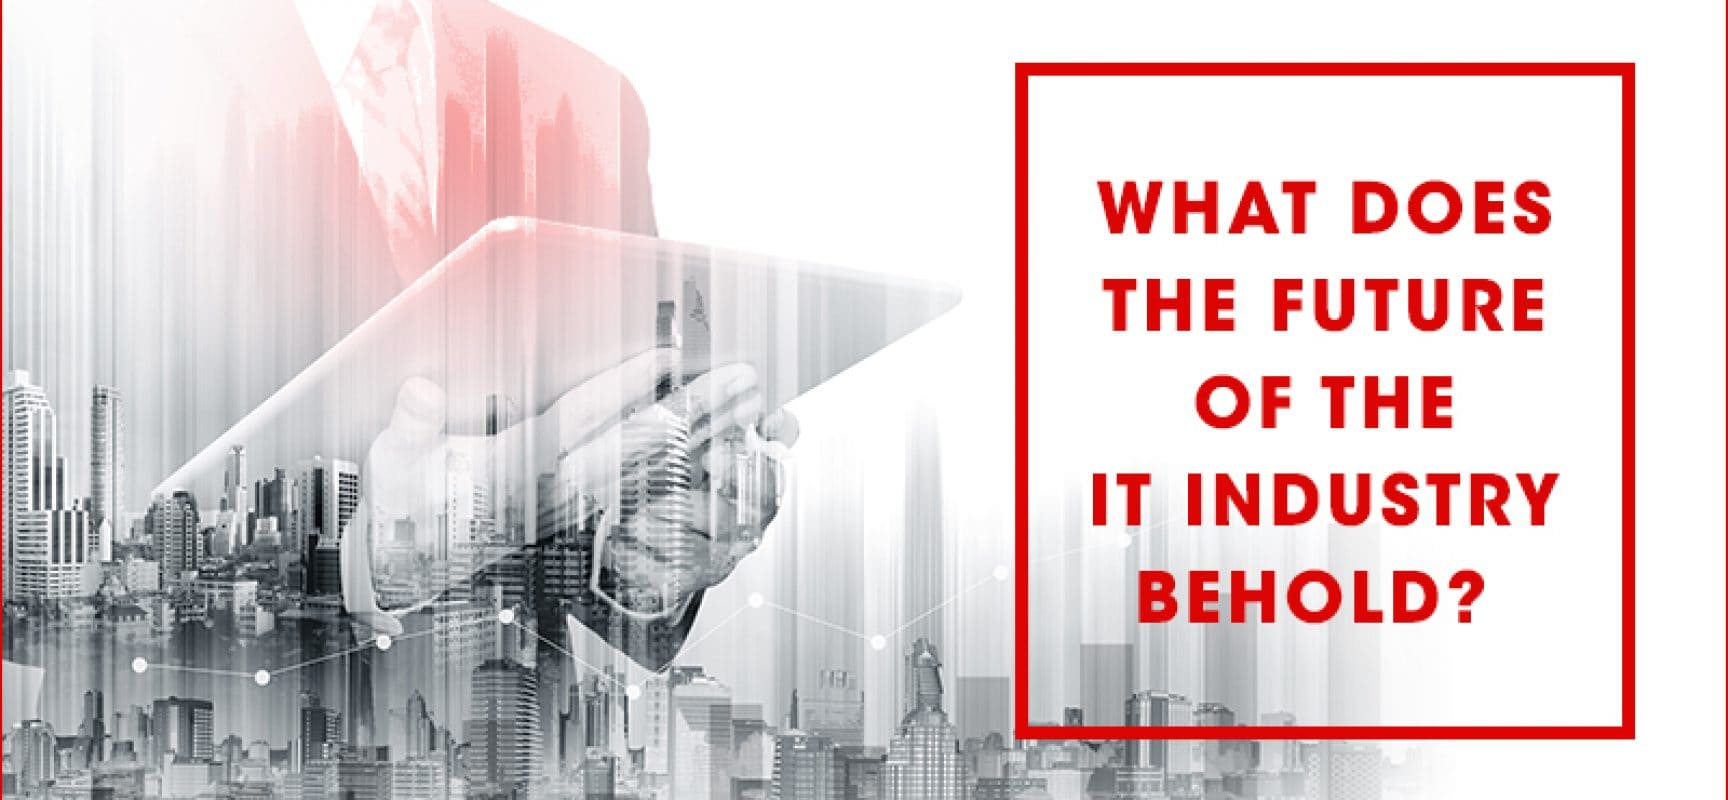 What does the future of the IT Industry behold?